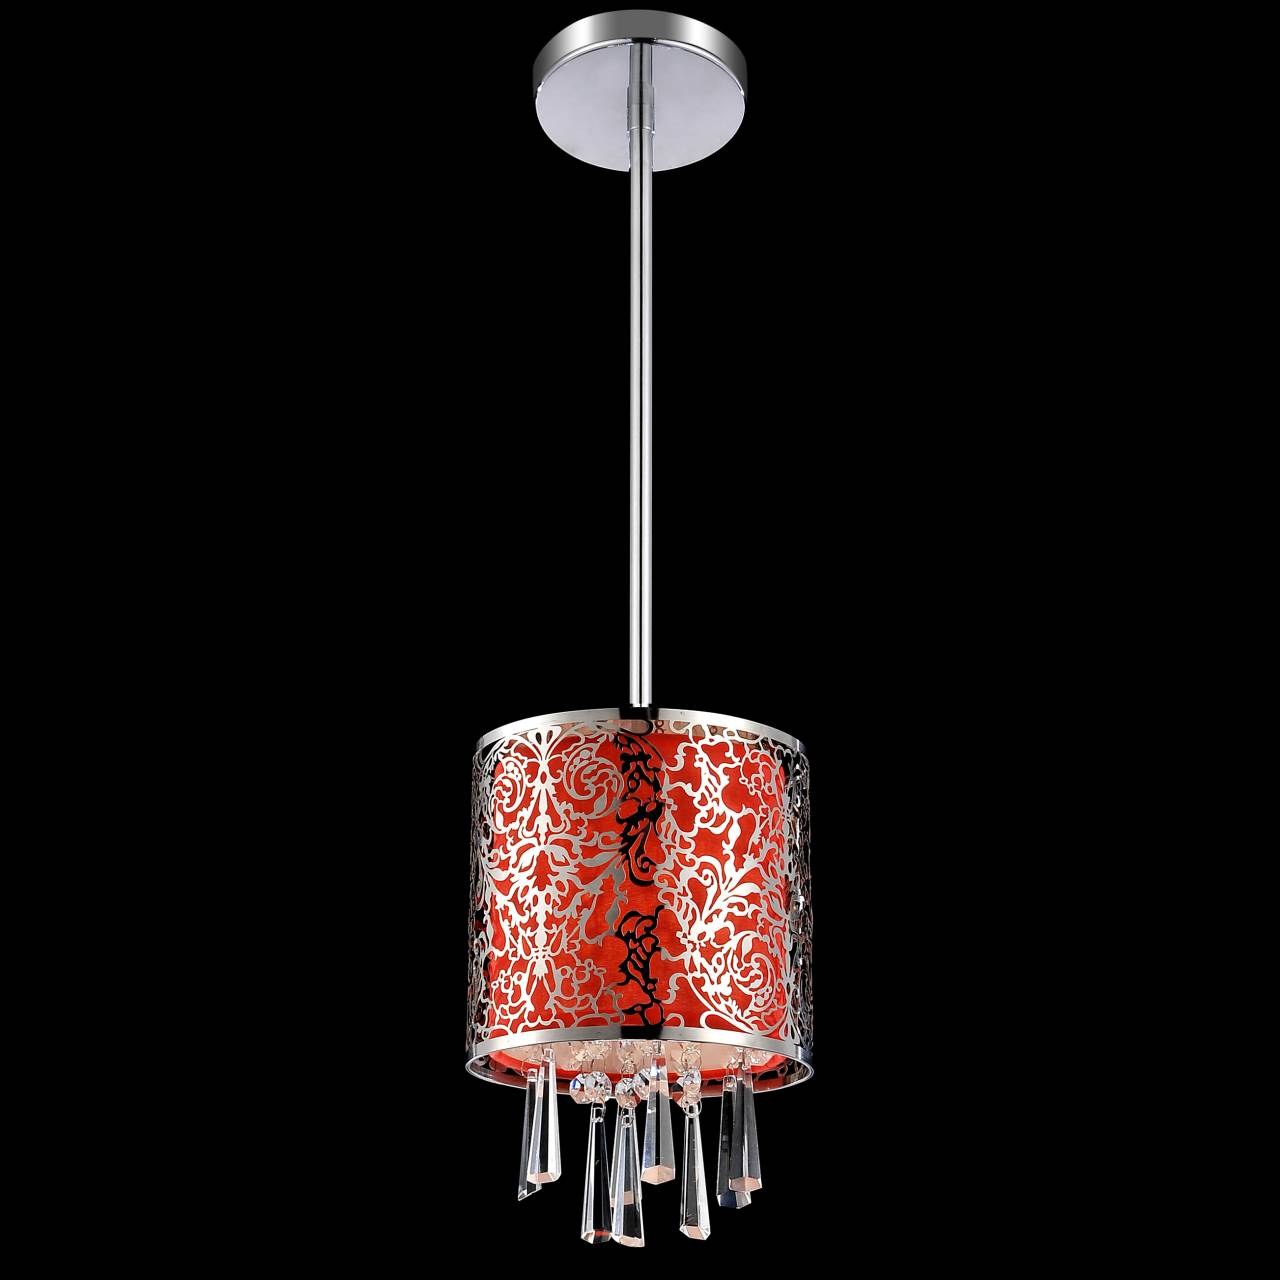 Crystal Pendant Lighting Fabric Shade Rectangle : Brizzo lighting stores quot drago modern crystal round mini